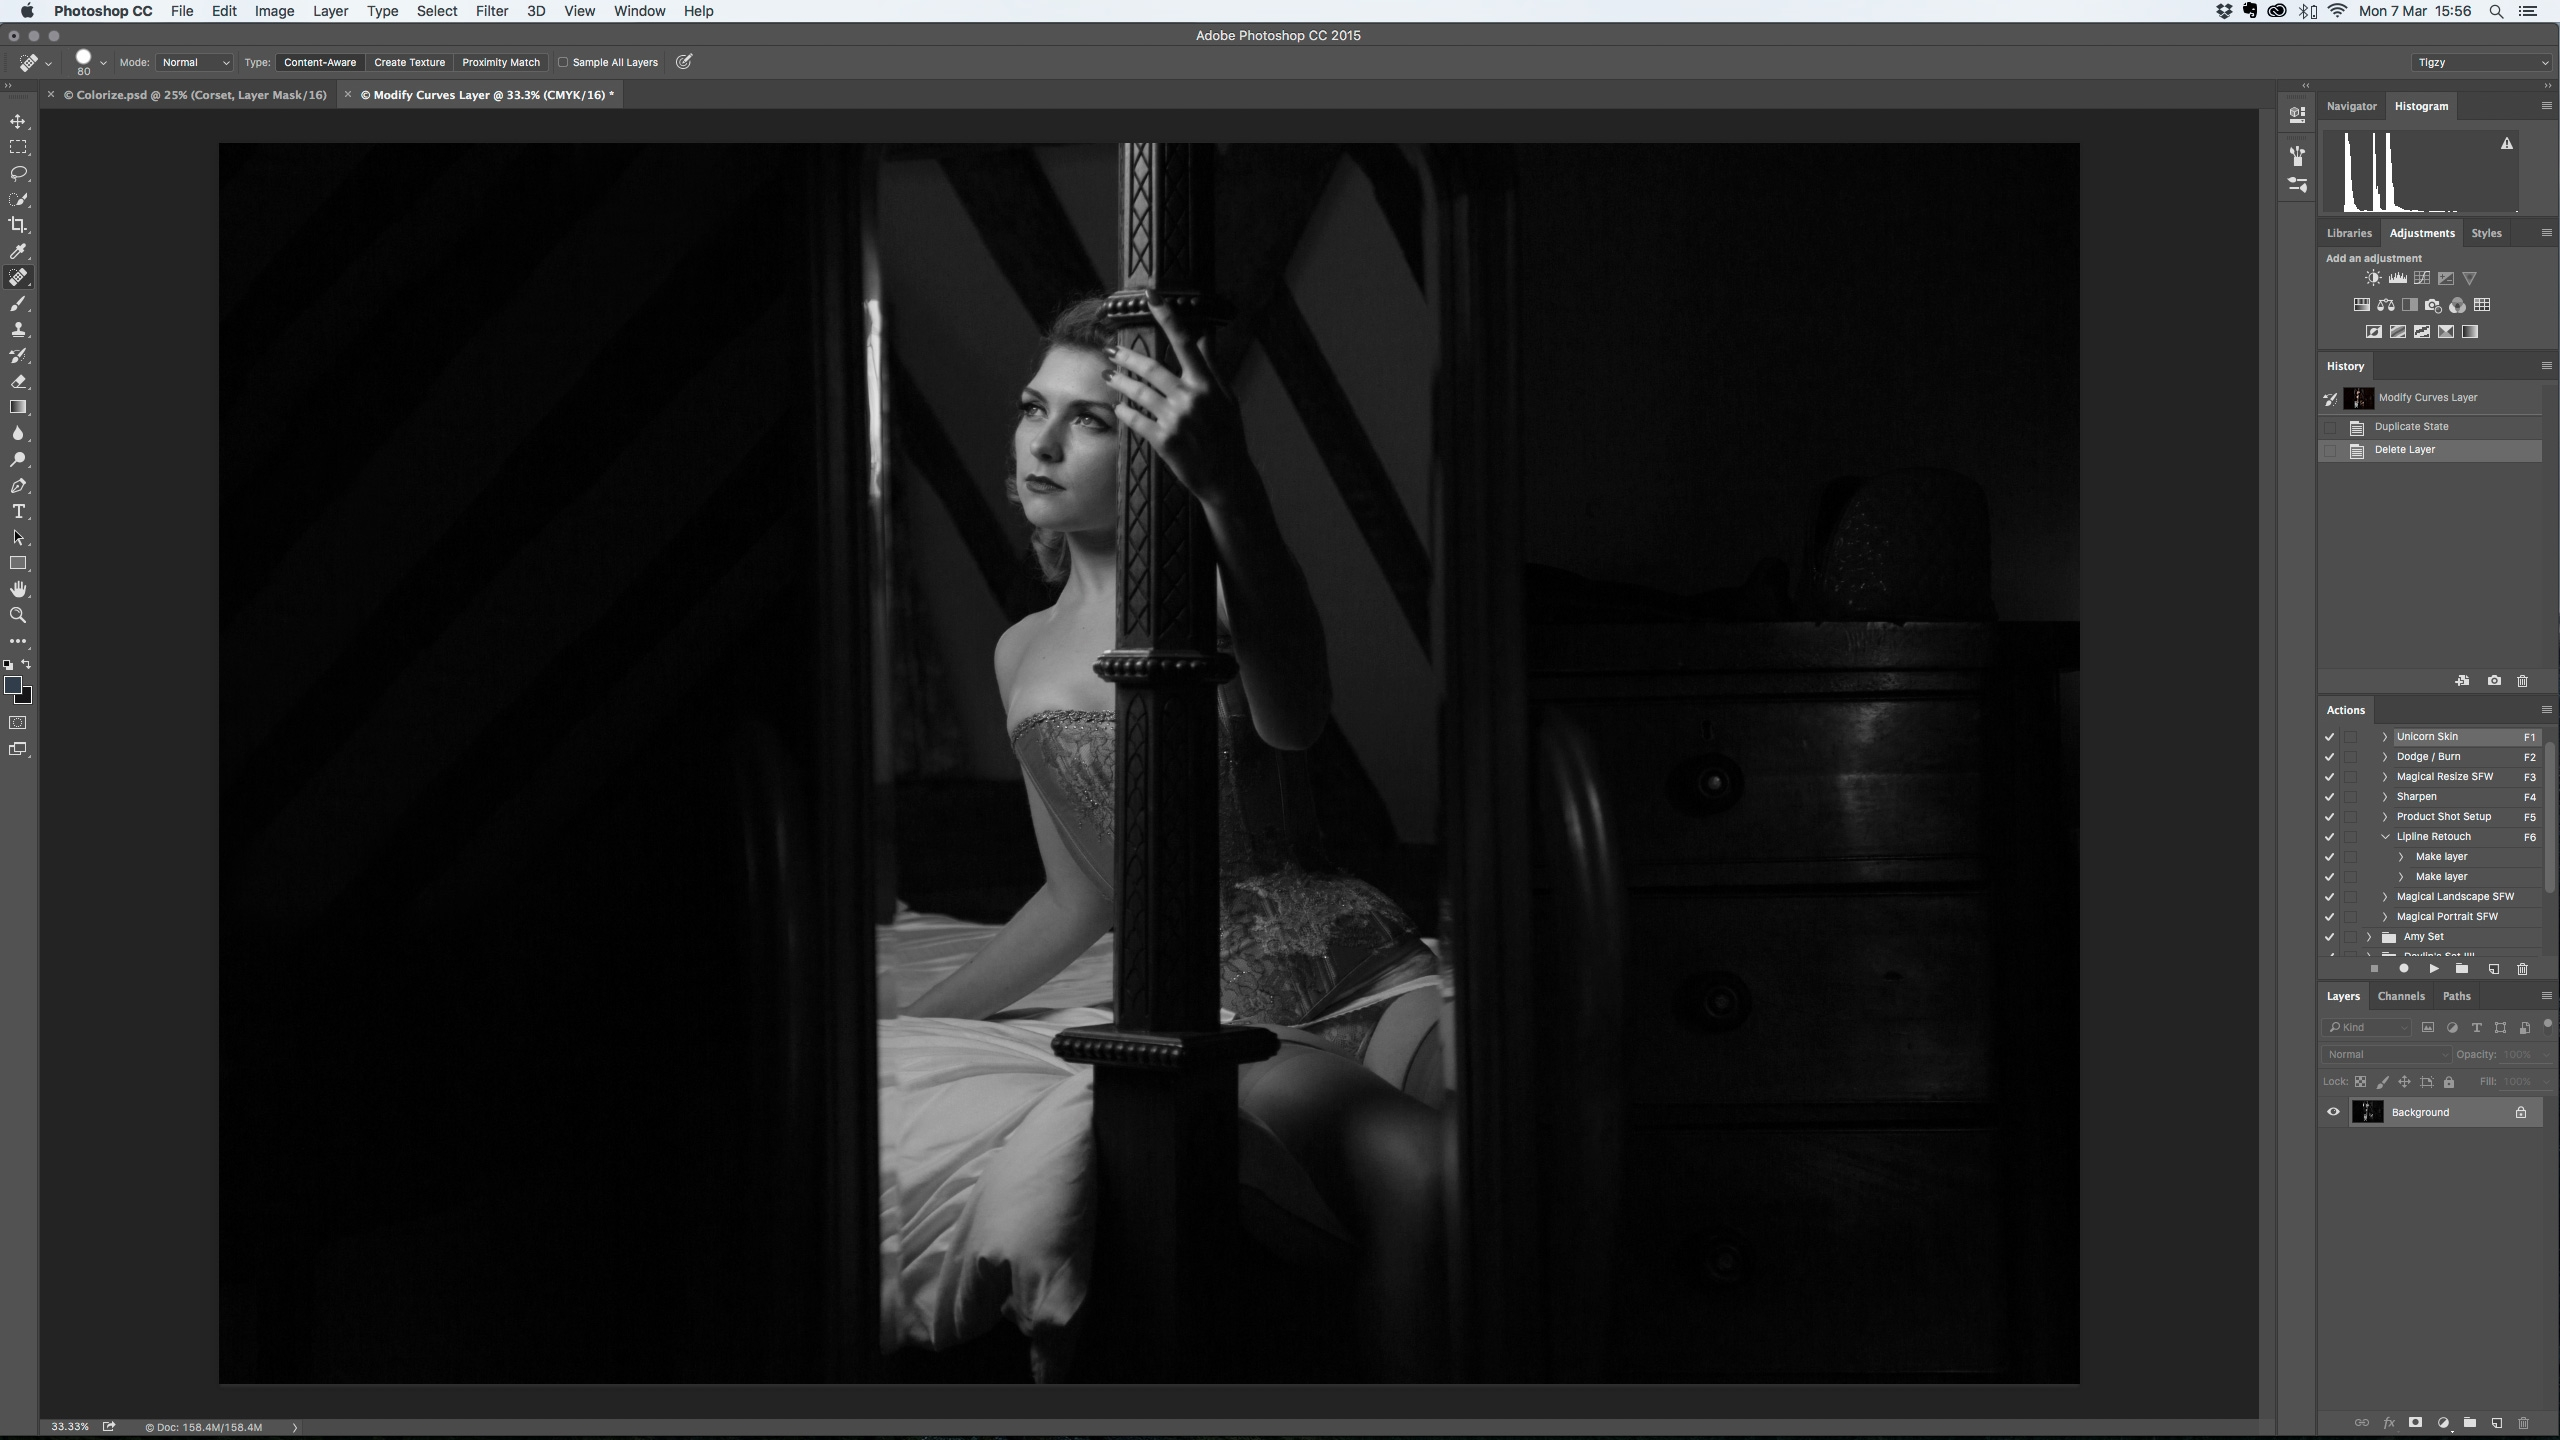 Photoshop Tutorial How To Colourise A Black And White Photo In Photoshop Digital Arts